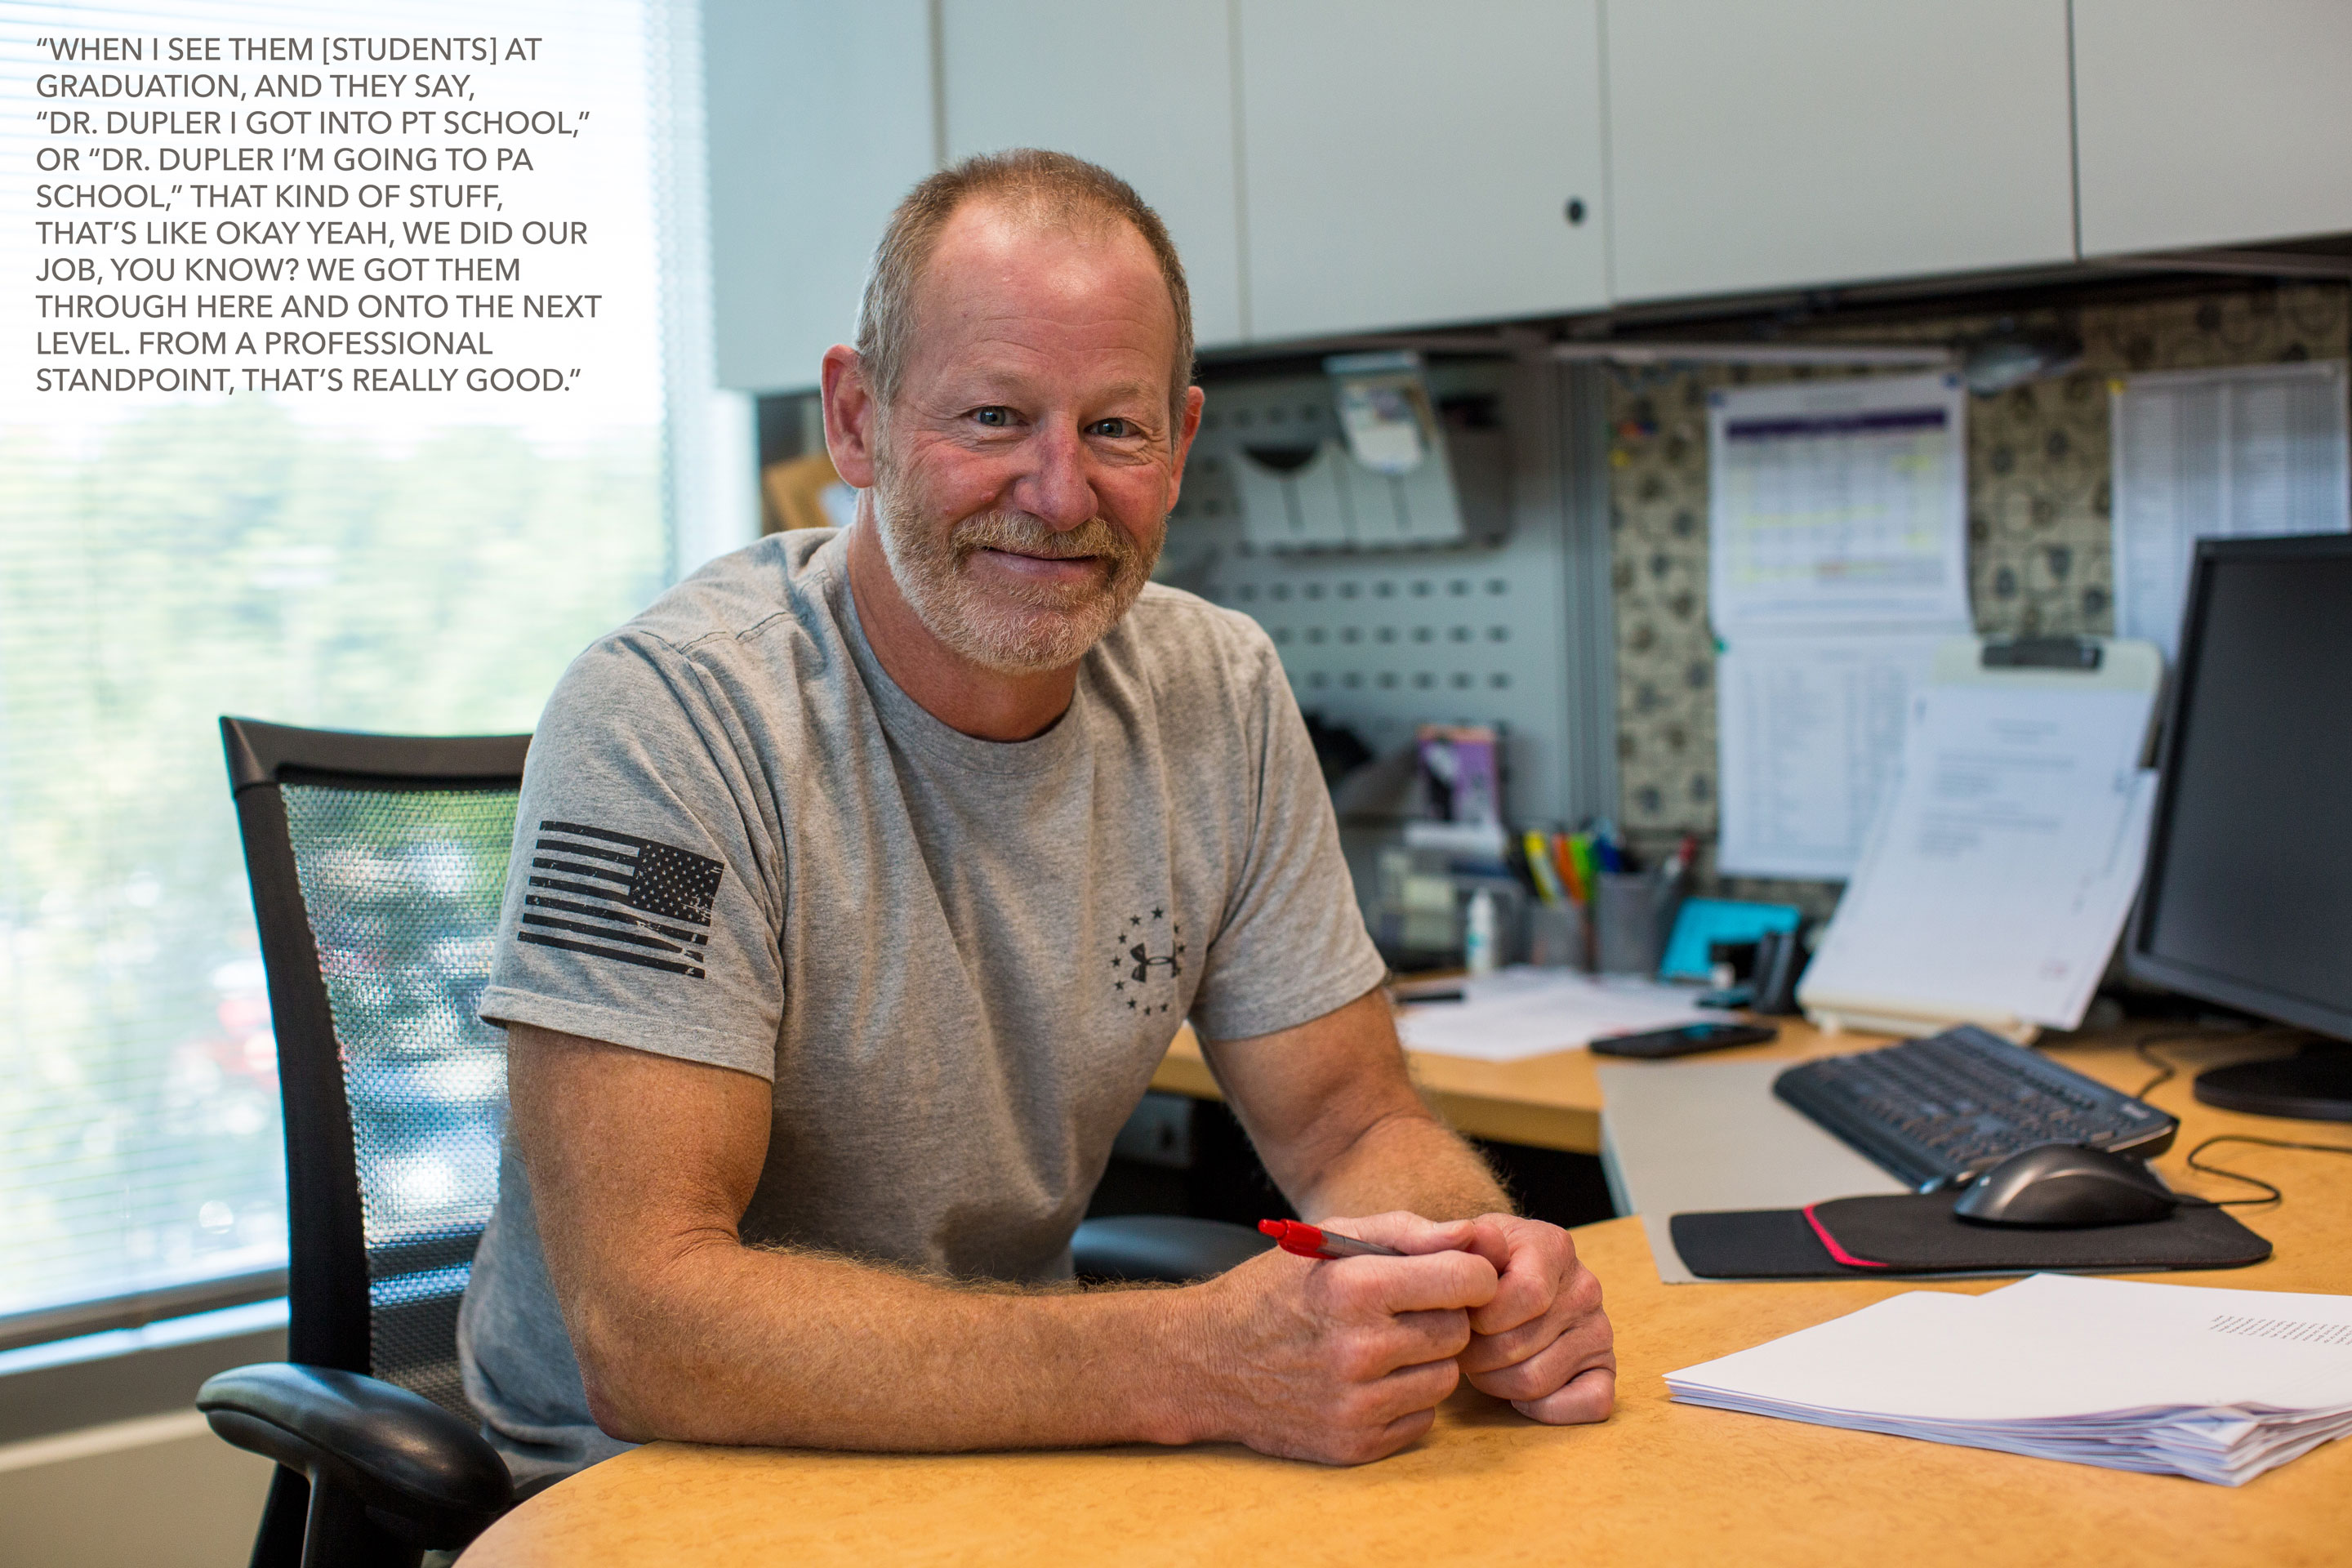 "Photo: UHCL faculty member Terry Dupler sits at his desk. Dupler states: ""When I see [students] at graduation, and they say 'Dr. Dupler, I got into PT school,' or 'Dr. Dupler, I'm going to PA school,' that kind of stuff, that's like, okay, yeah, we did our job, you know? We got them through here and onto the next level. From a professional standpoint, that's really good."" Photo & interview by The Signal reporters Maegan Hufstetler and Travis Pennington."